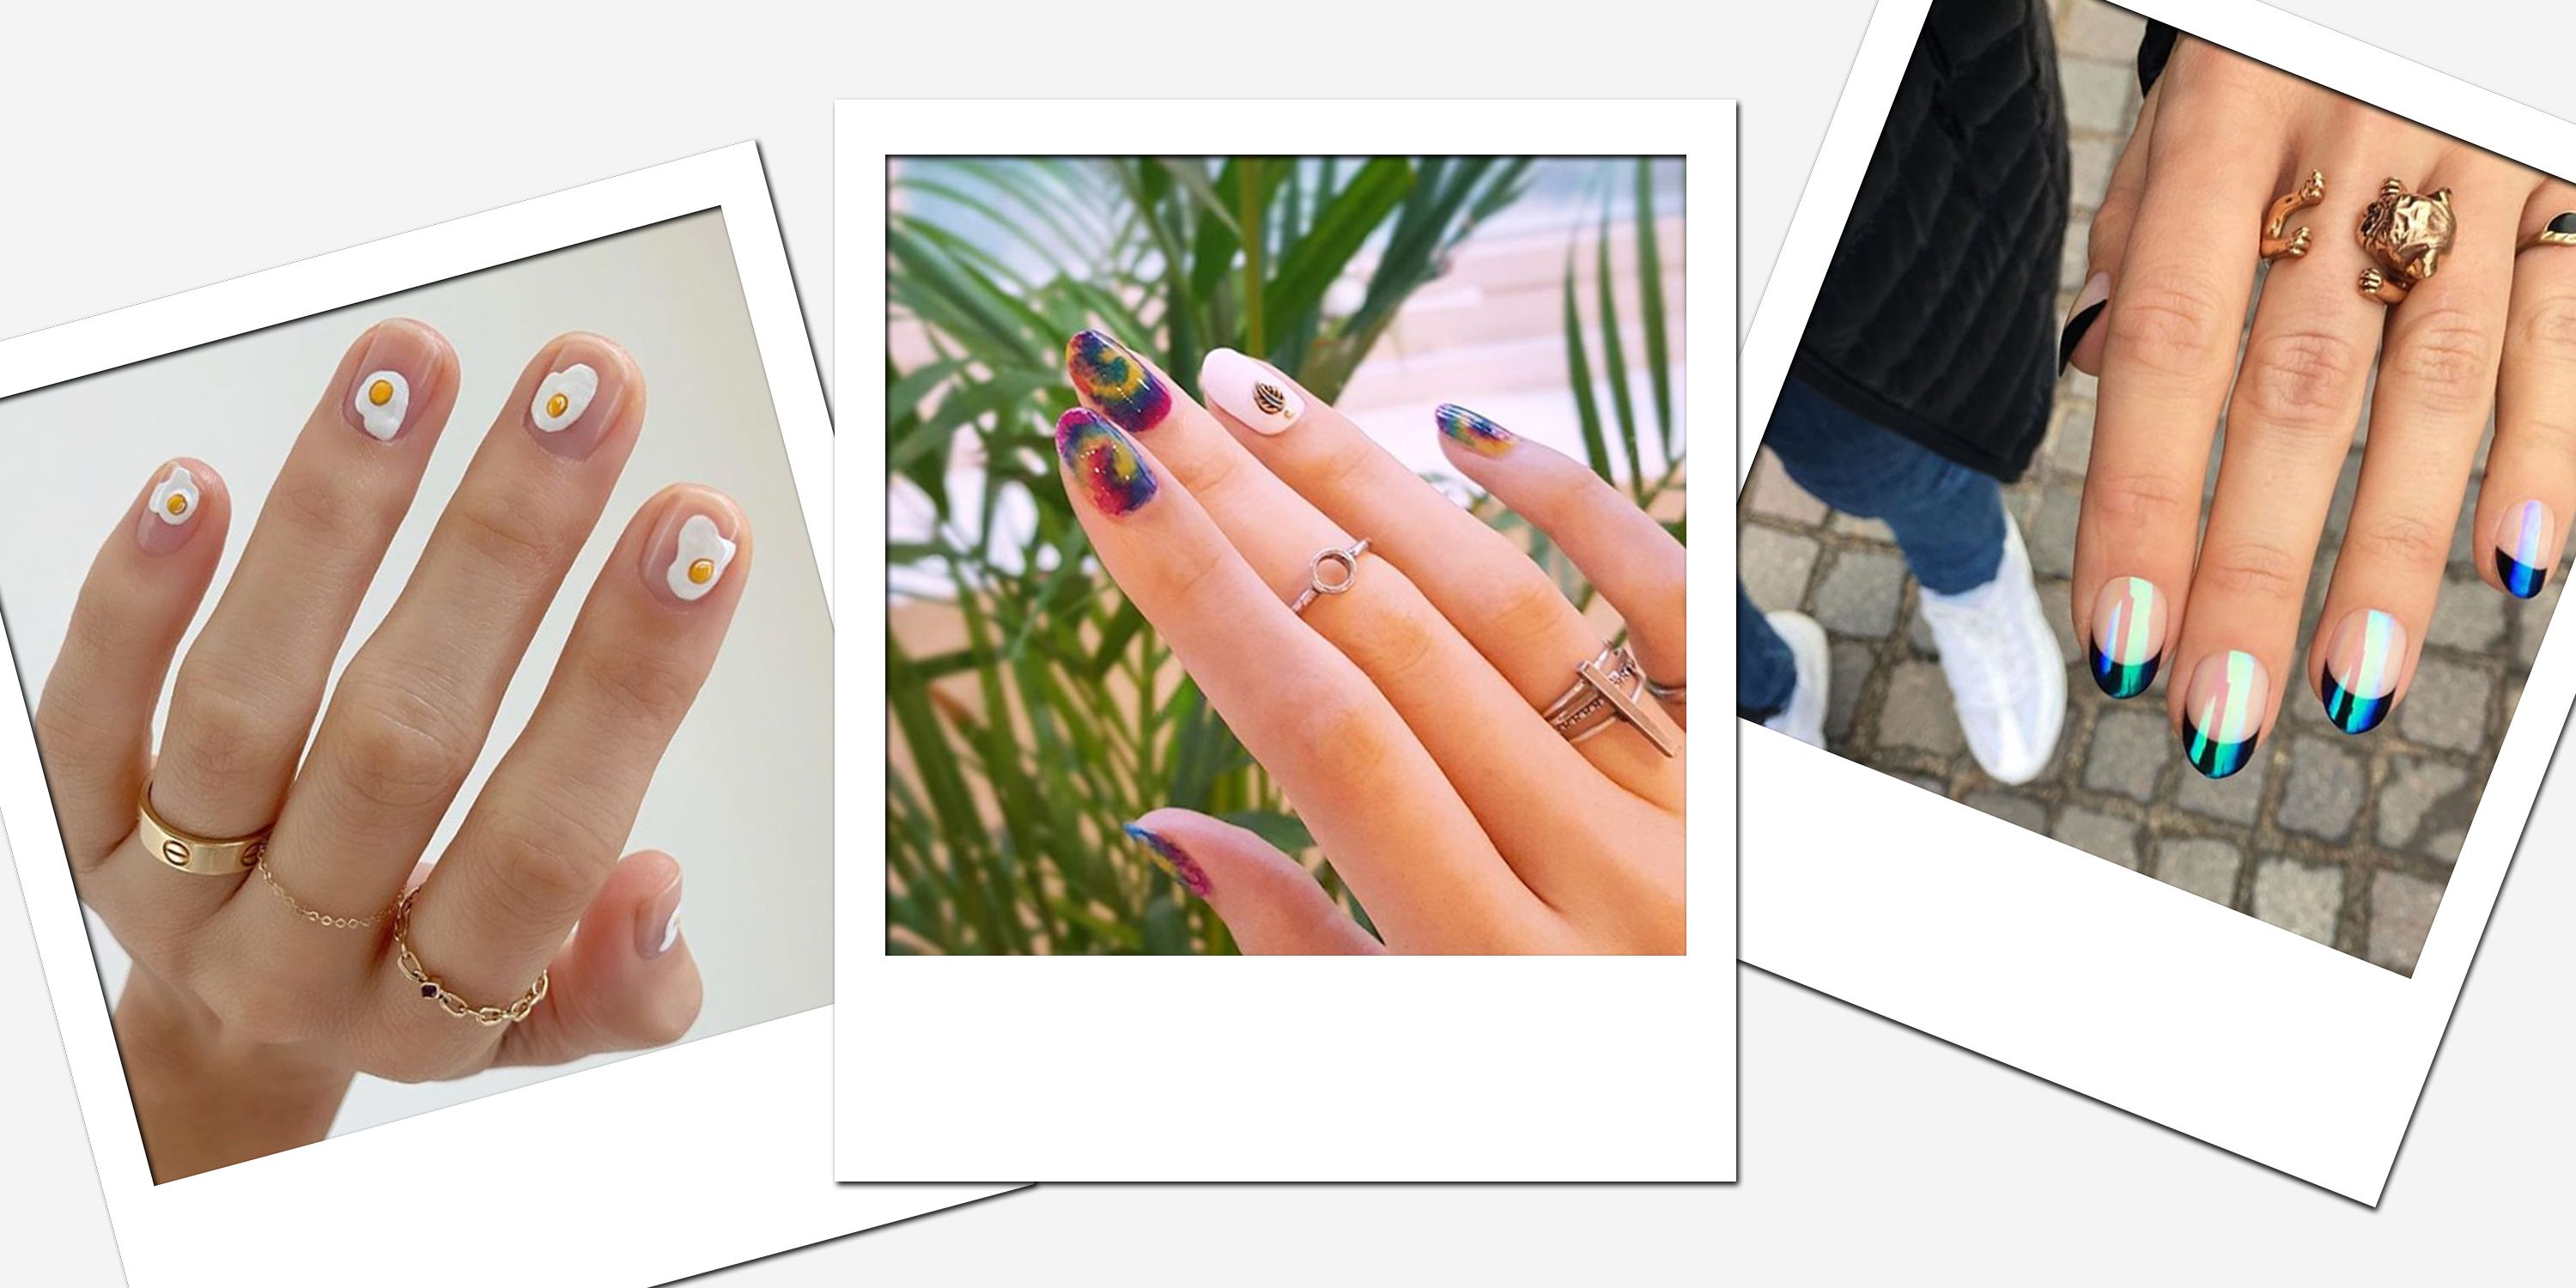 25 Top Nail Trends 2019 The Biggest Nail Art And Manicure